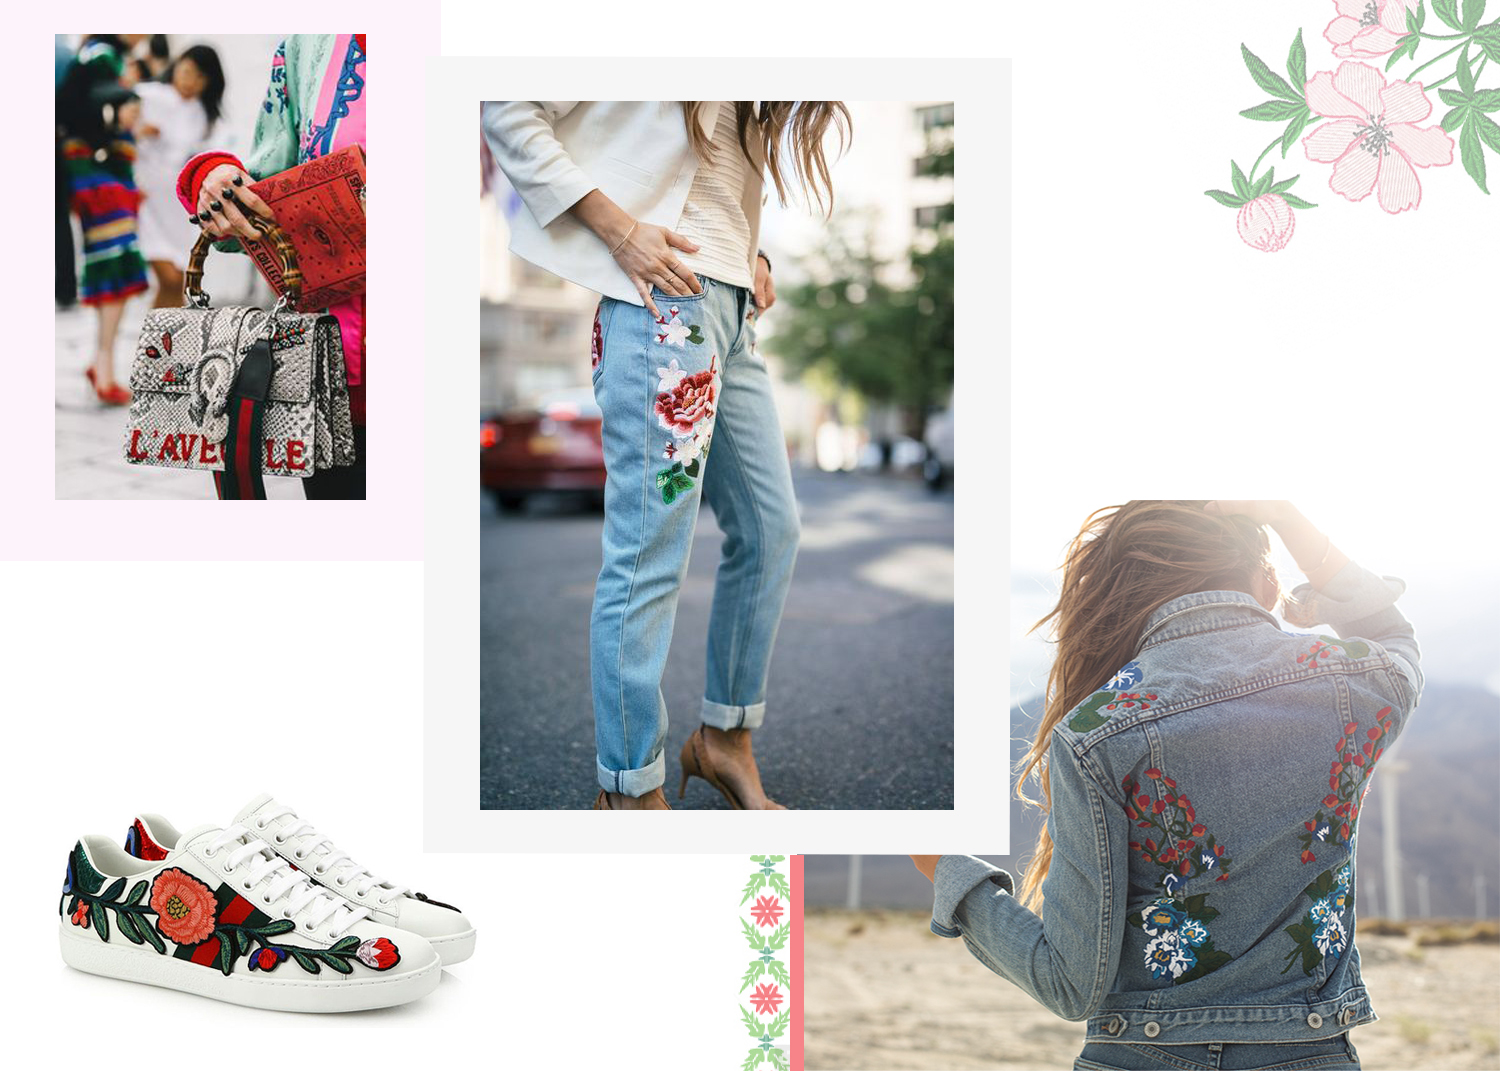 Floral embroidery trend for spring